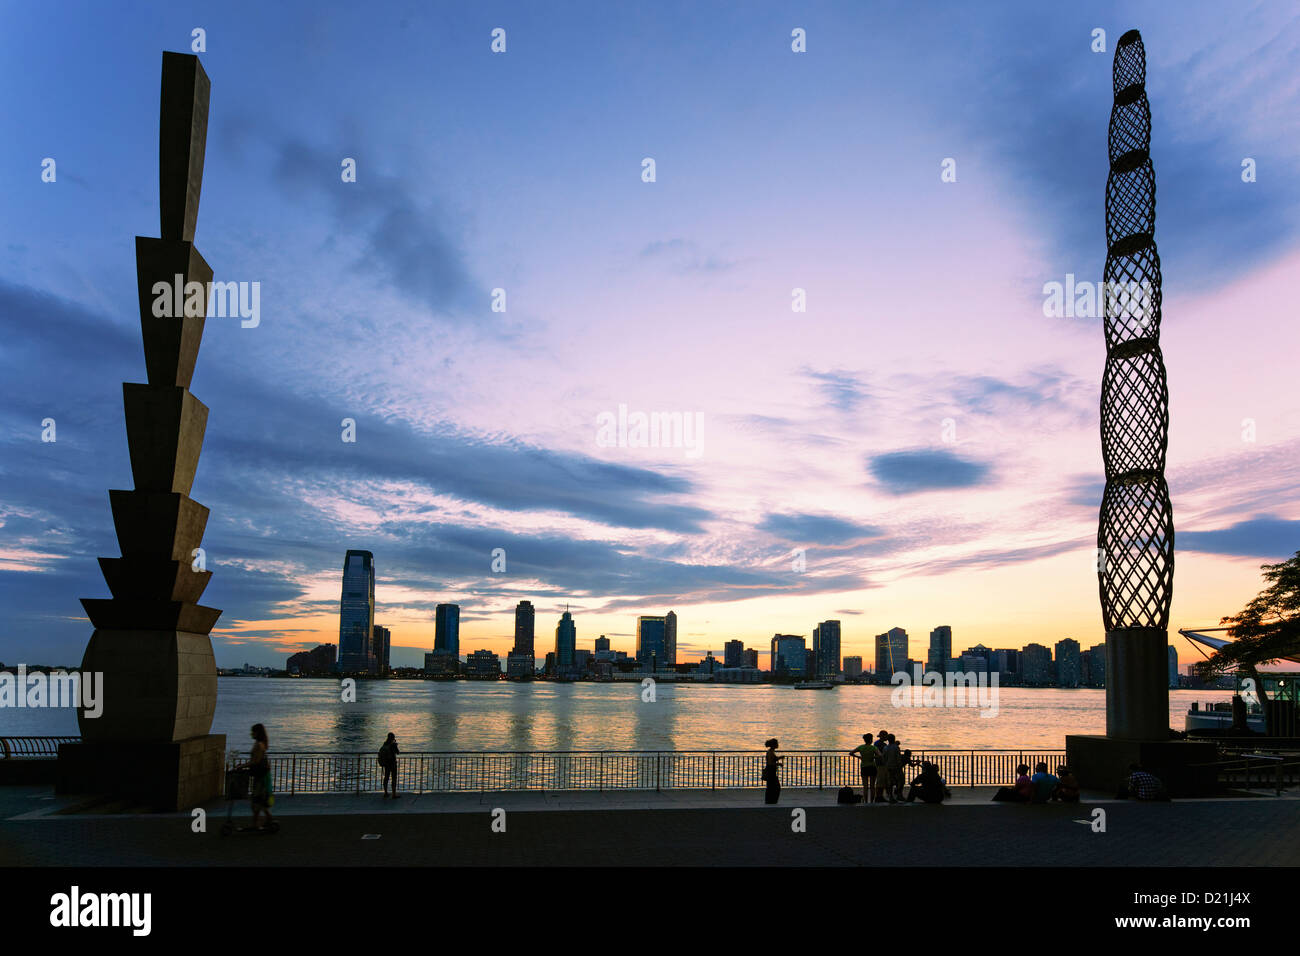 Pylons by Martin Puryear, View from Battery Park to Skyline of New Jersey at Sunset, Belvedere, Winter Garden, Hudson - Stock Image